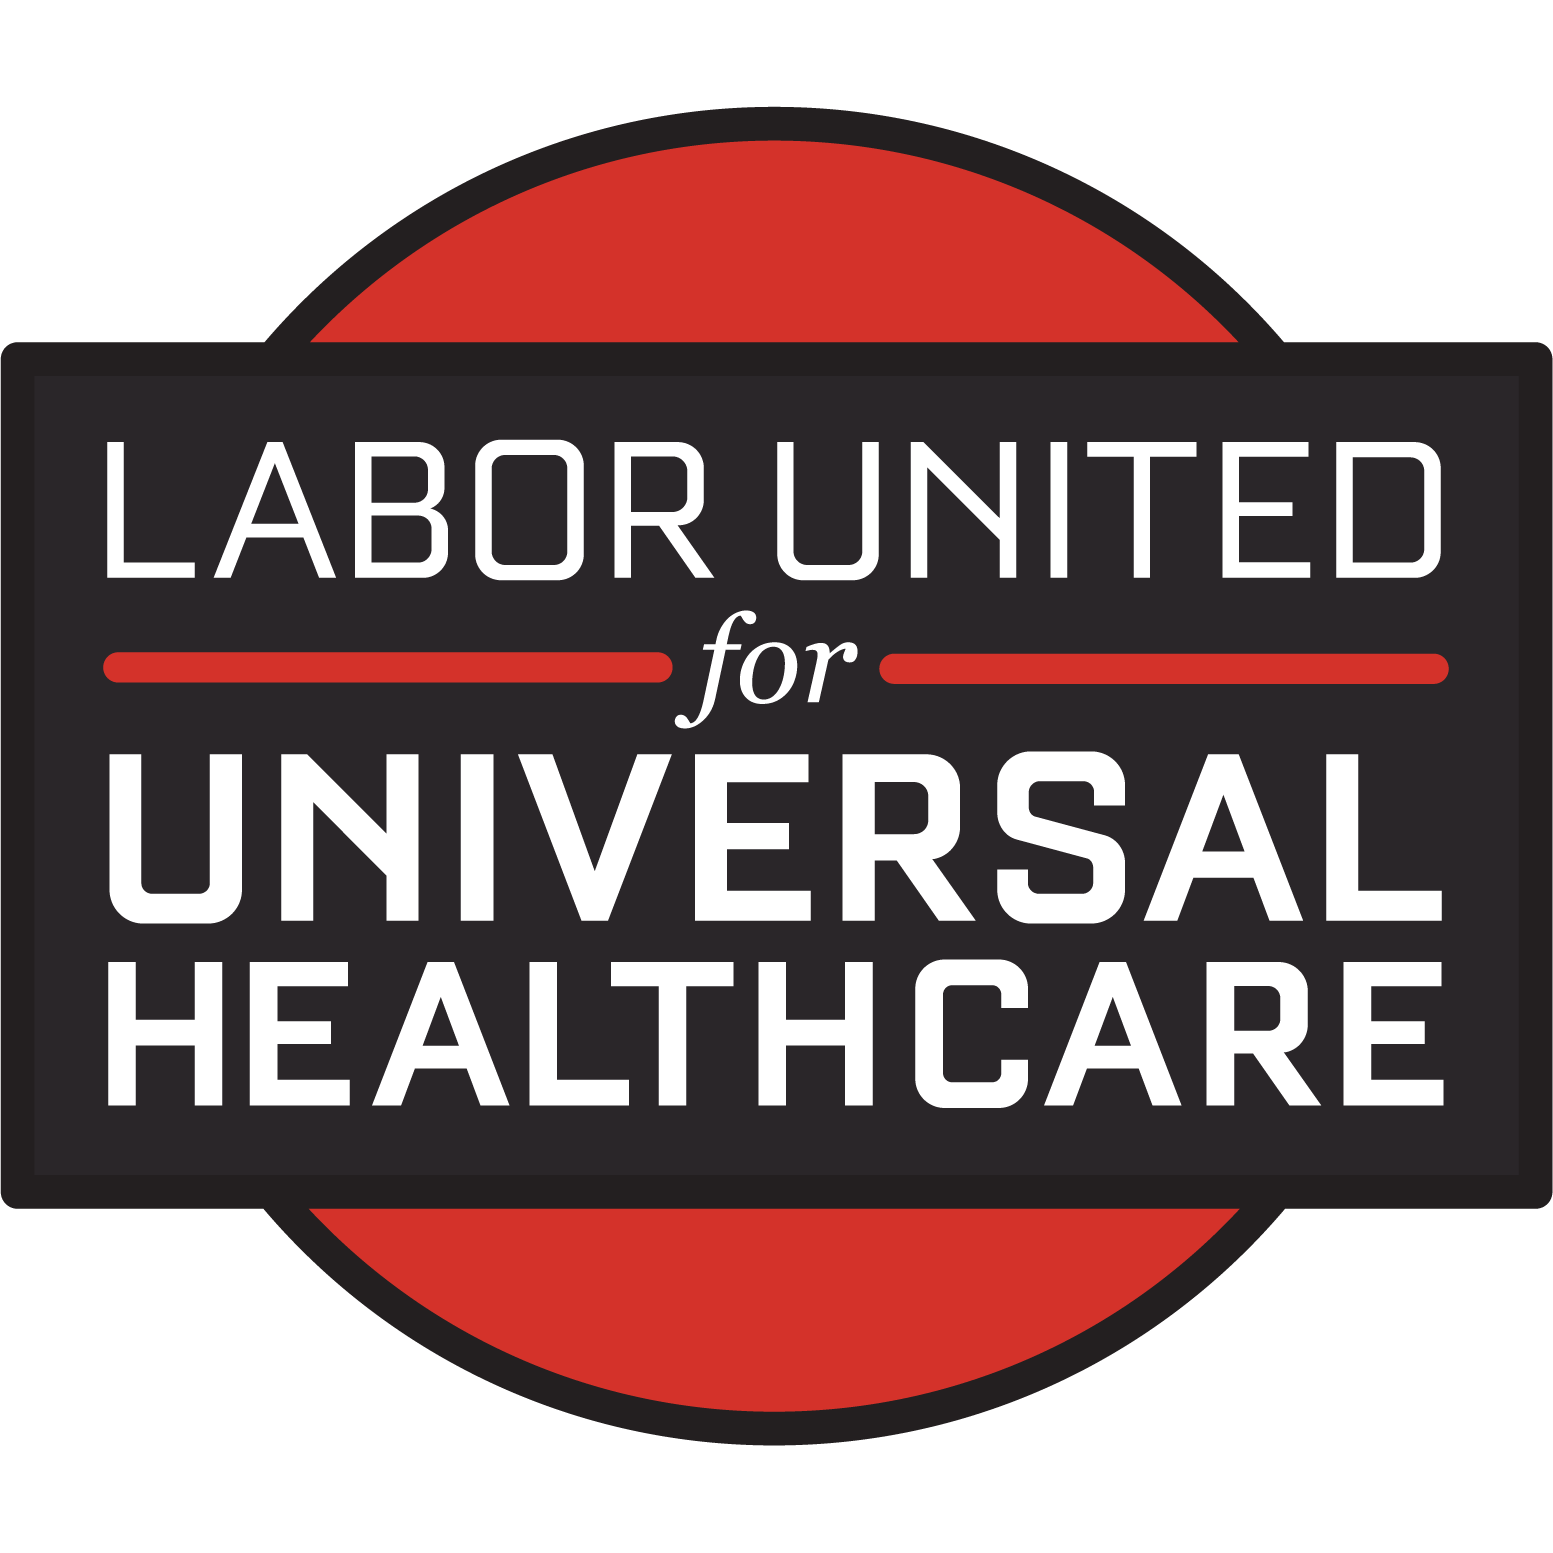 universal worker in healthcare Definition of 'universal health care coverage' universal health care coverage refers to systems in which all legal residents of a given jurisdiction have health insurance coverage most.